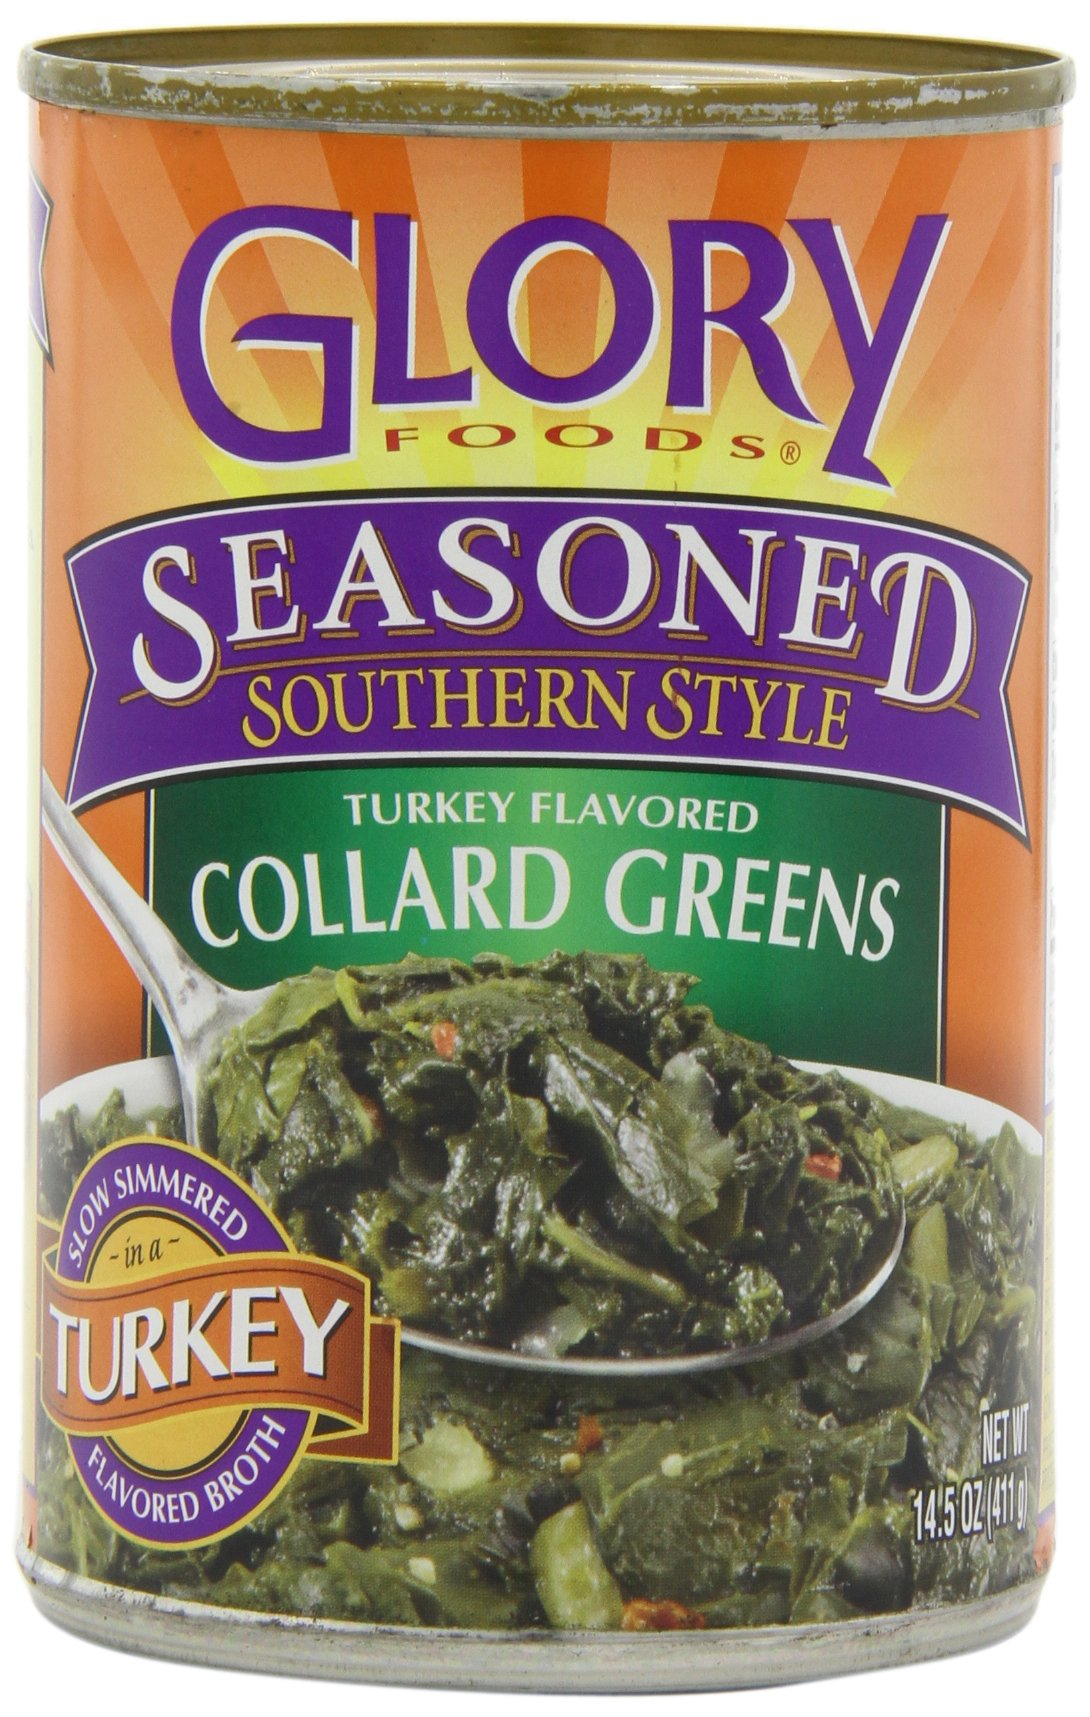 Glory Foods Seasoned Collard Greens with Smoked Turkey, 14.5-Ounce (Pack of 12) by Glory Foods